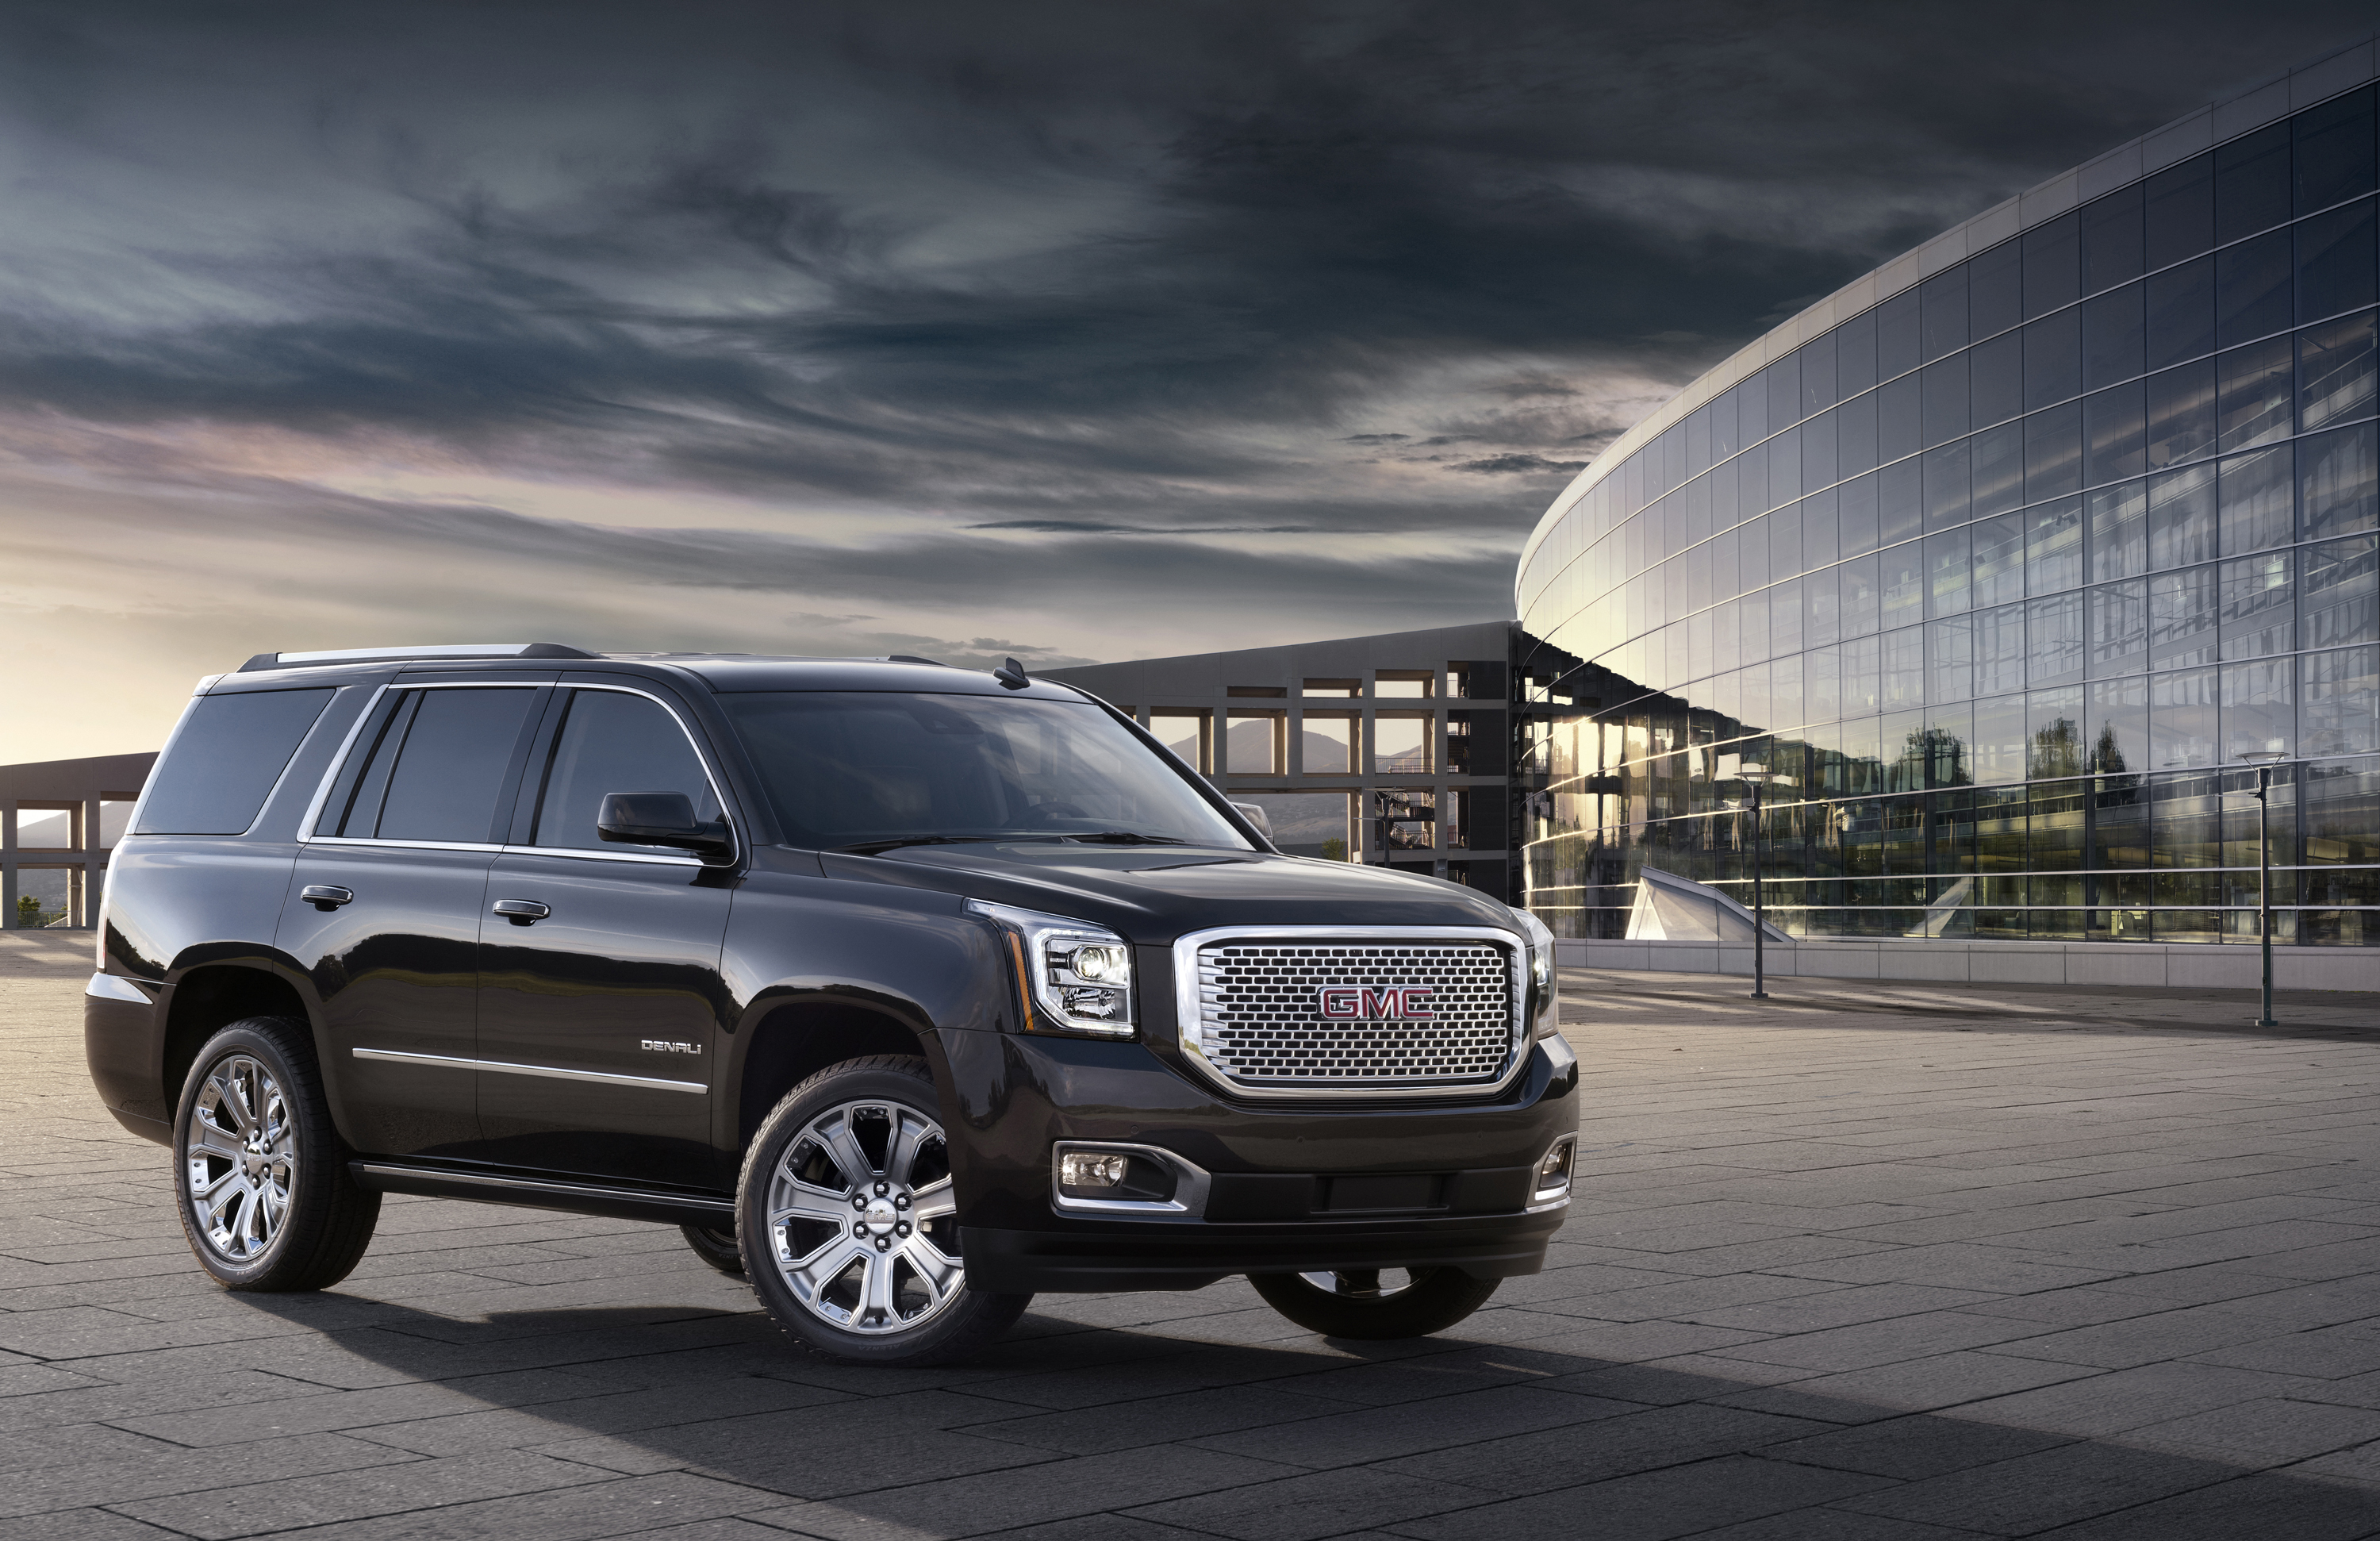 2016 gmc yukon named best large suv for families ozzie. Black Bedroom Furniture Sets. Home Design Ideas